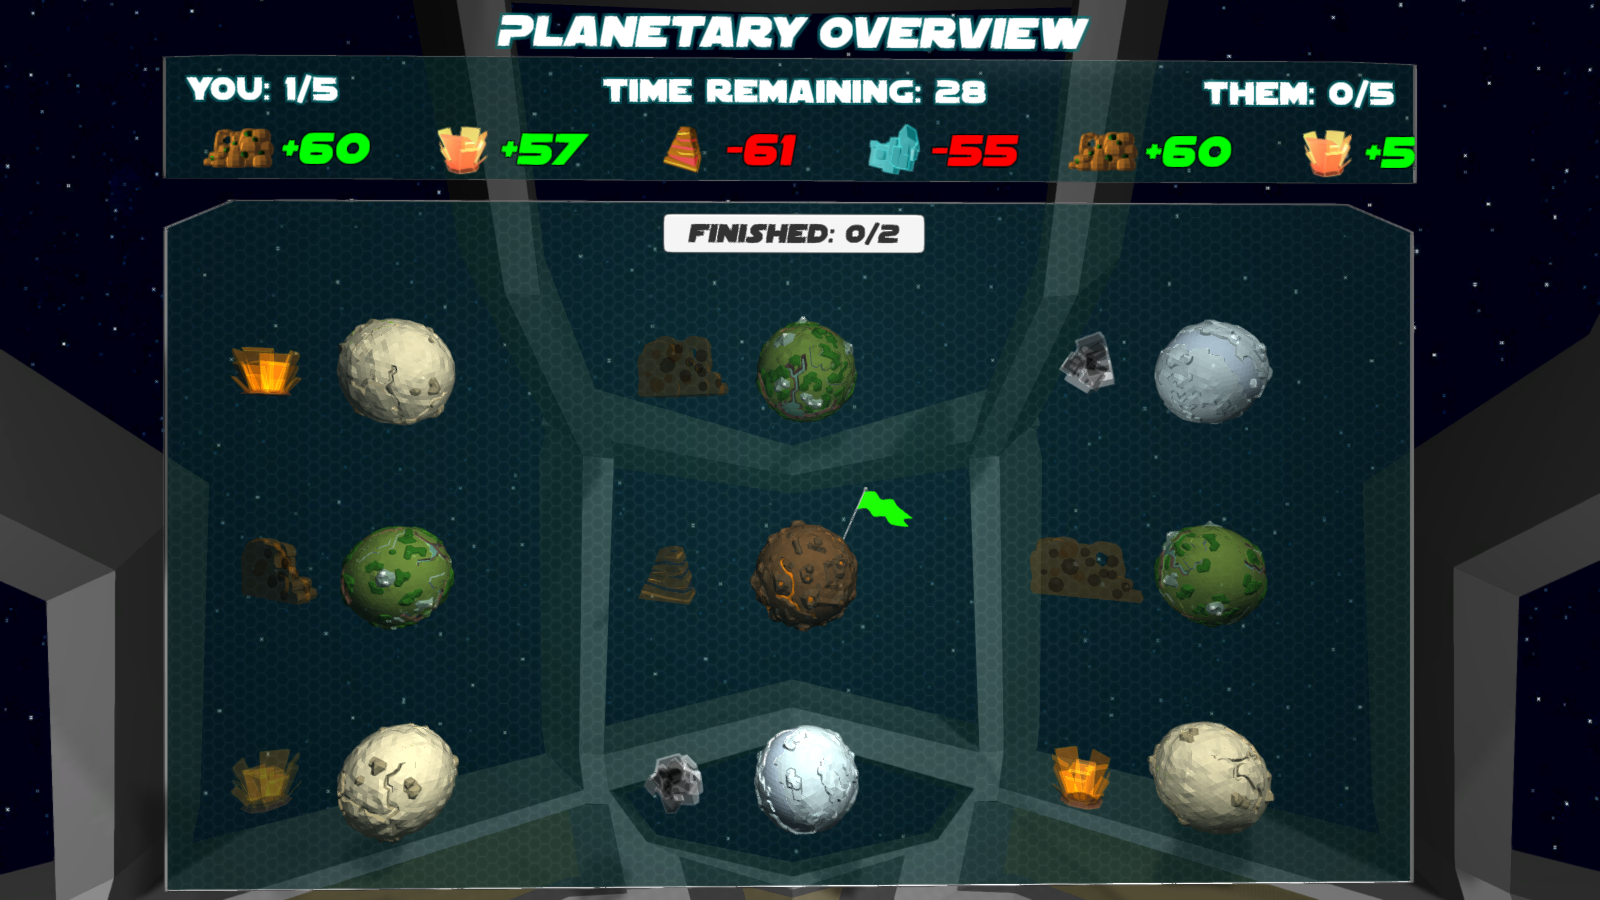 Planetary Overview with 1 planet owned